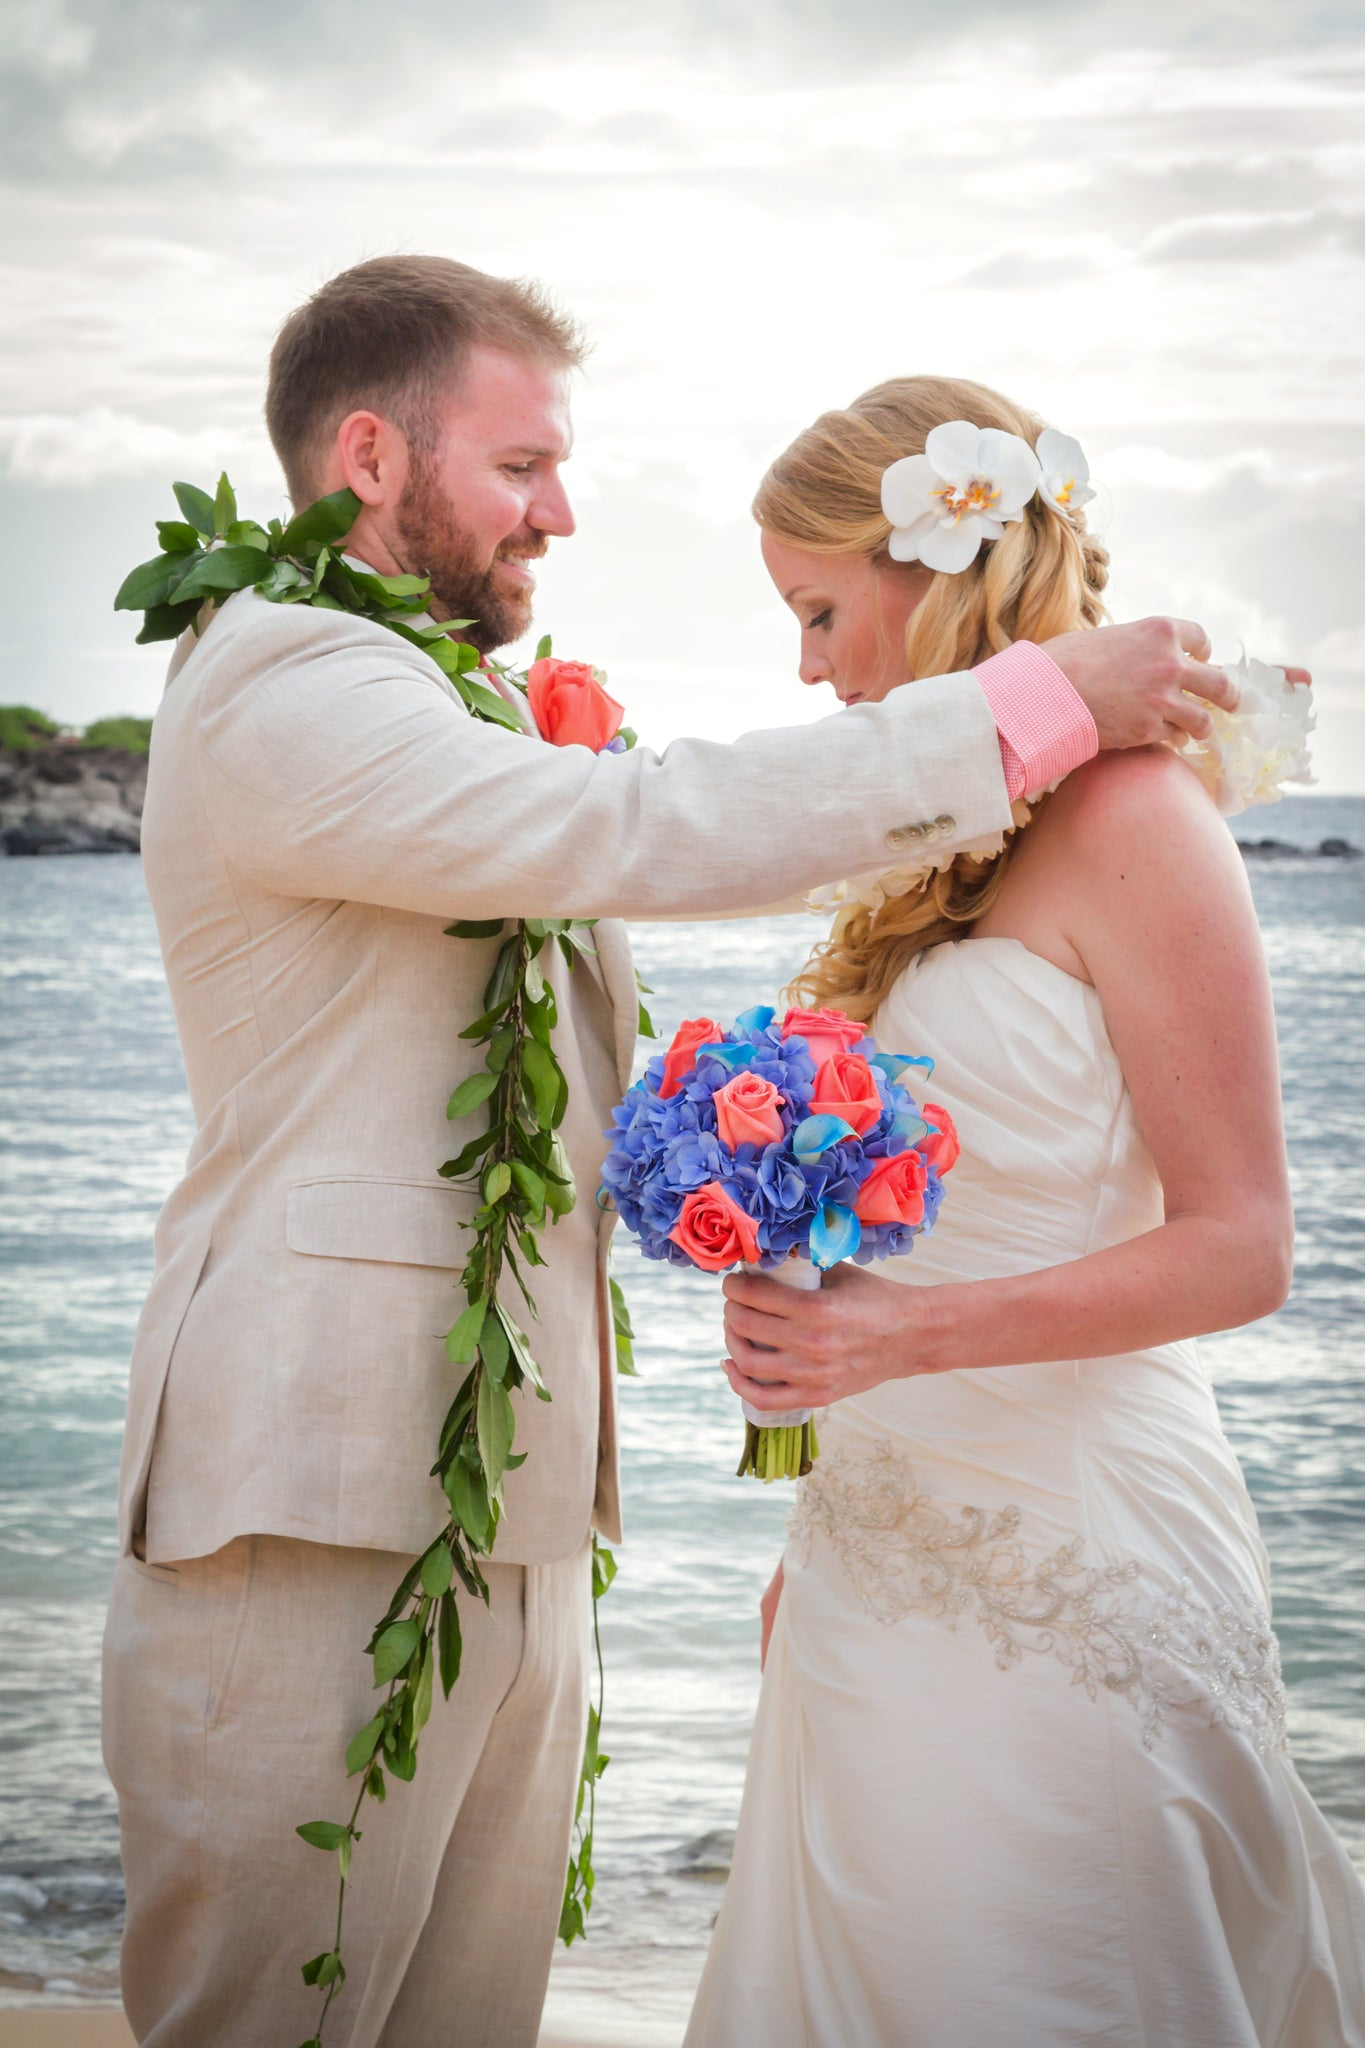 Groom lei's his new Wife in Hawaii tradition